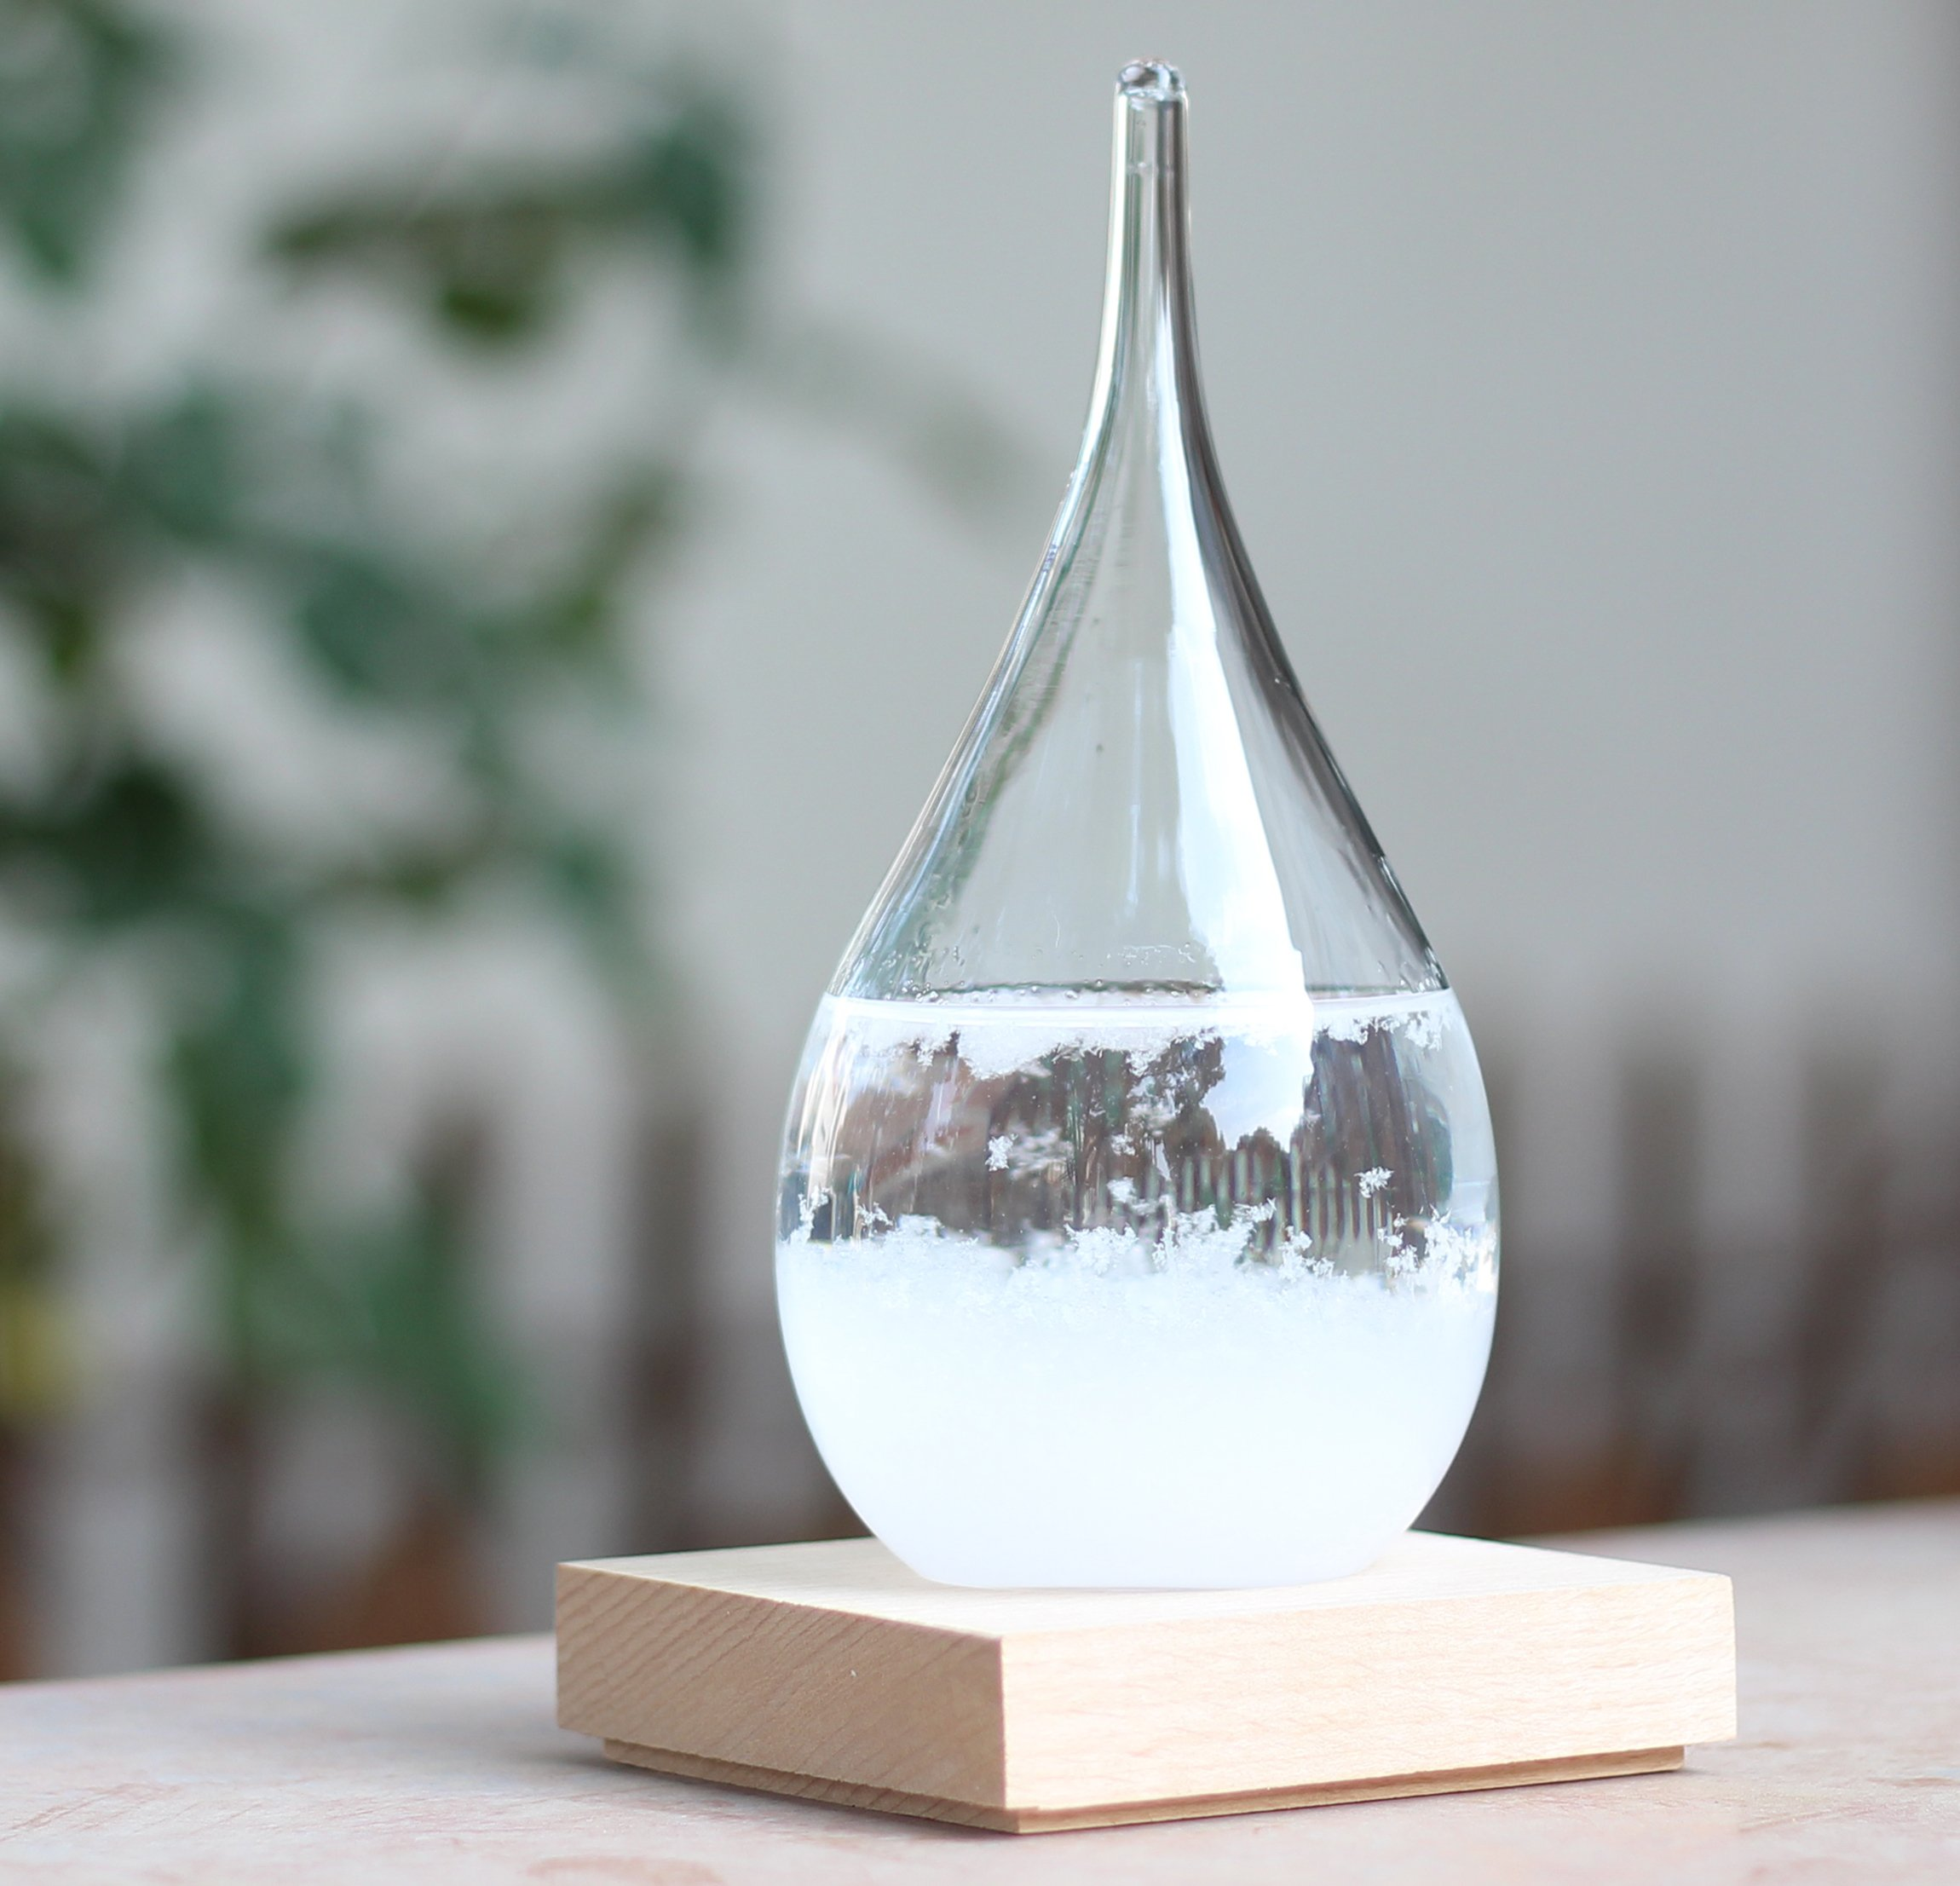 meisou Weather Predictor Storm Glass Globe Drop Decoration Large Weather Forecast Ornament Barometer Storm Bottle Thermometer